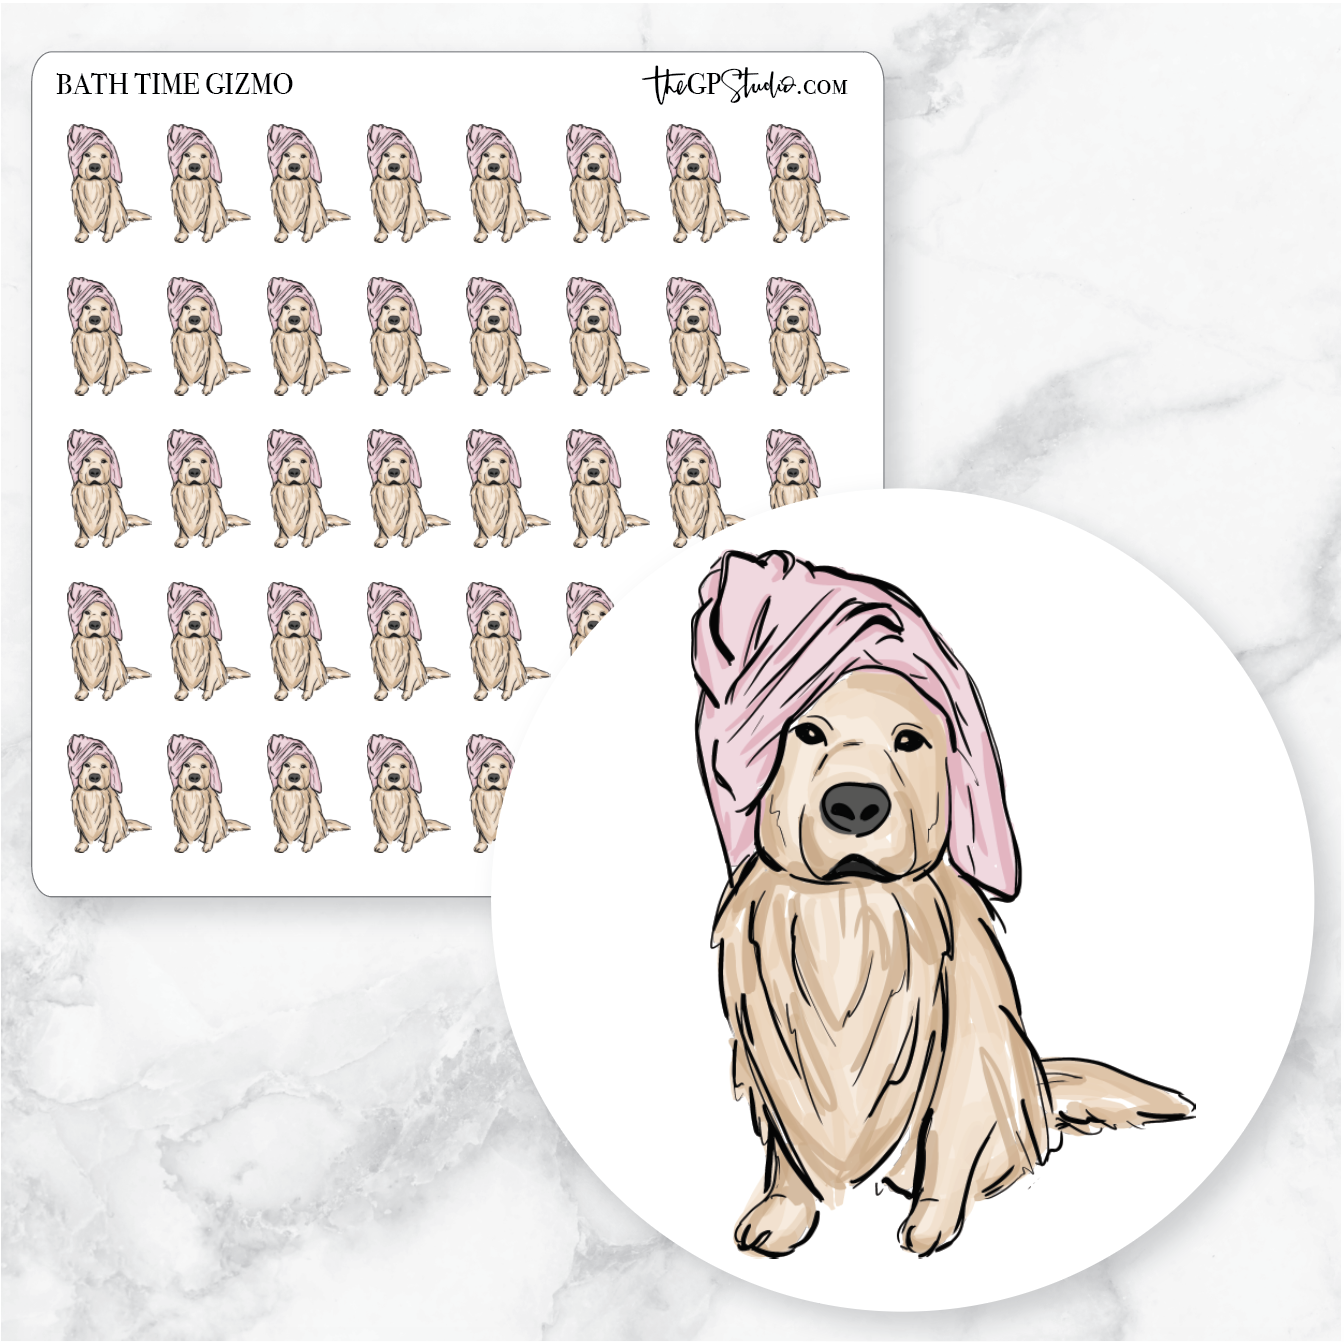 BATH TIME GIZMO Planner Stickers-The GP Studio